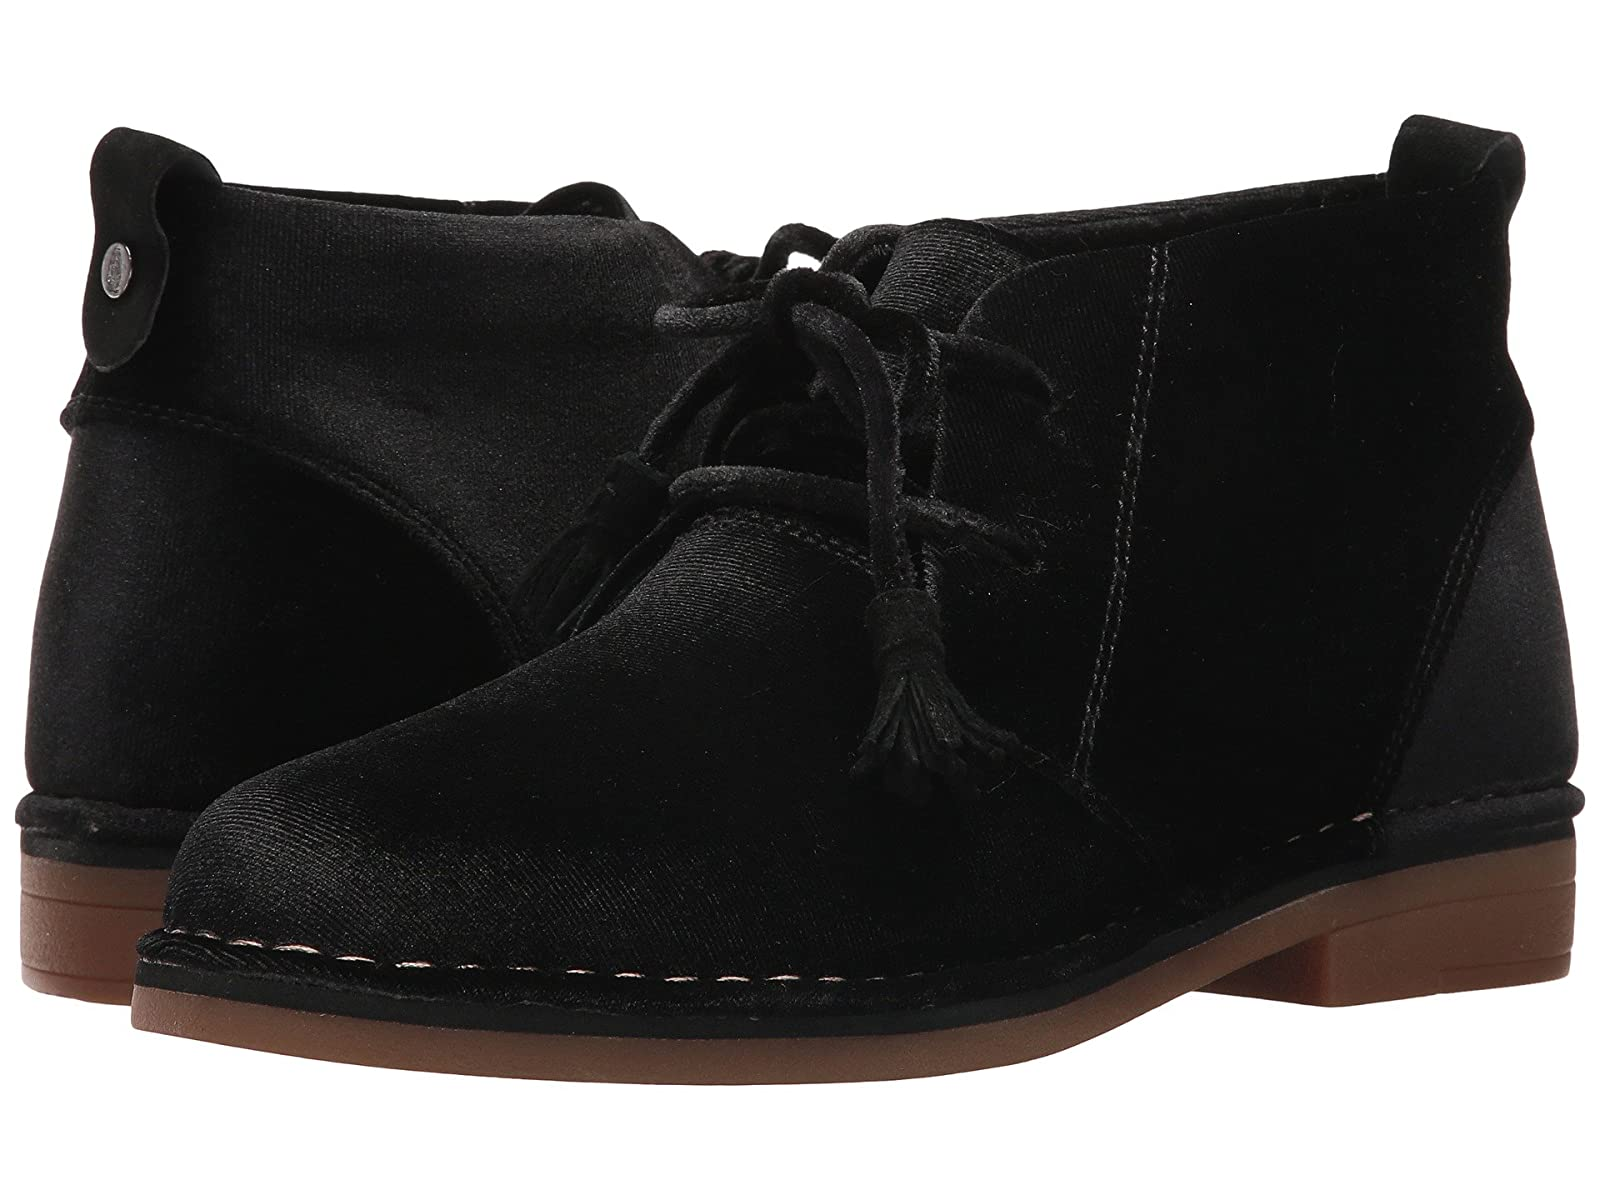 Hush Puppies Cyra CatelynCheap and distinctive eye-catching shoes